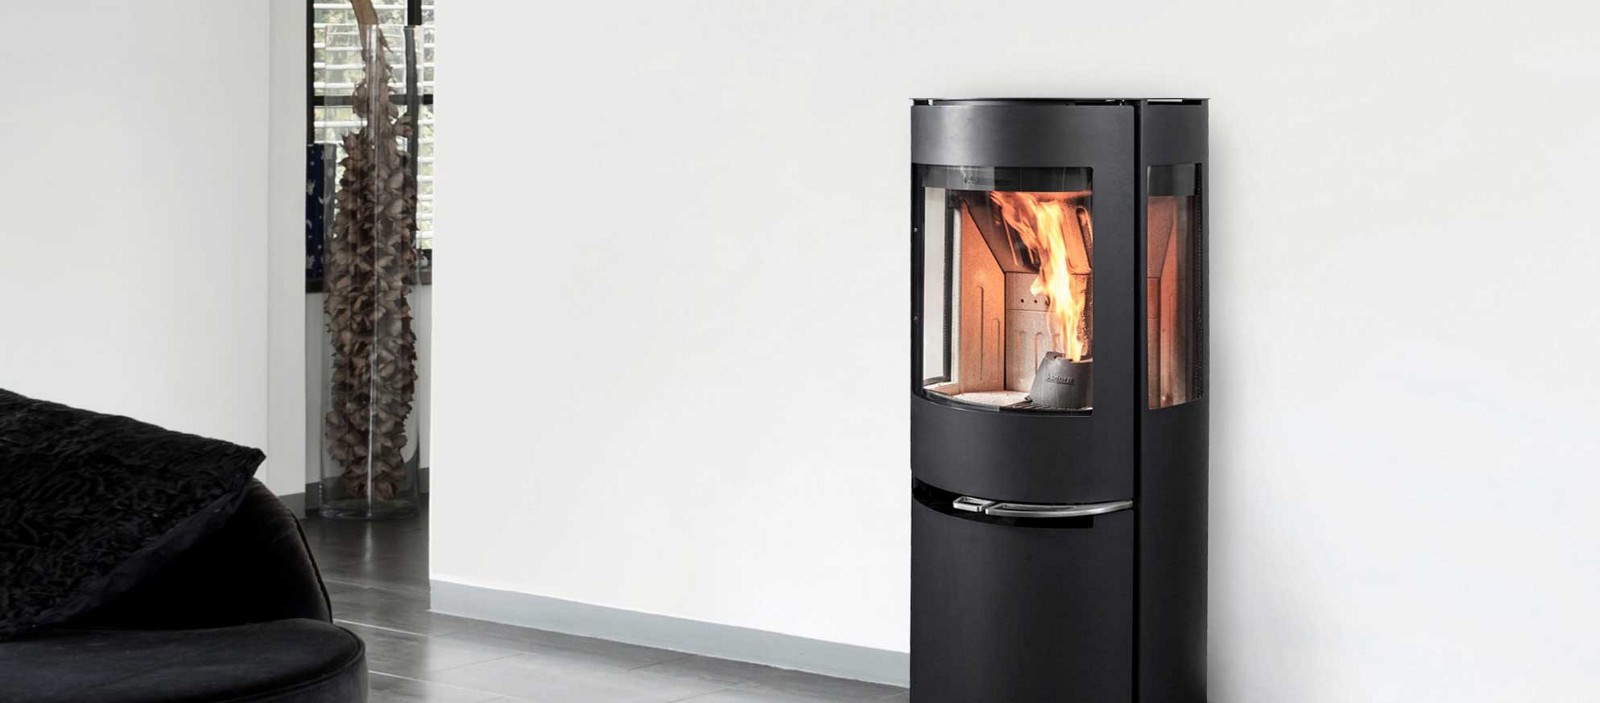 THE FUTURE OF WOOD BURNING STOVES? – Fireplace Products – Medium